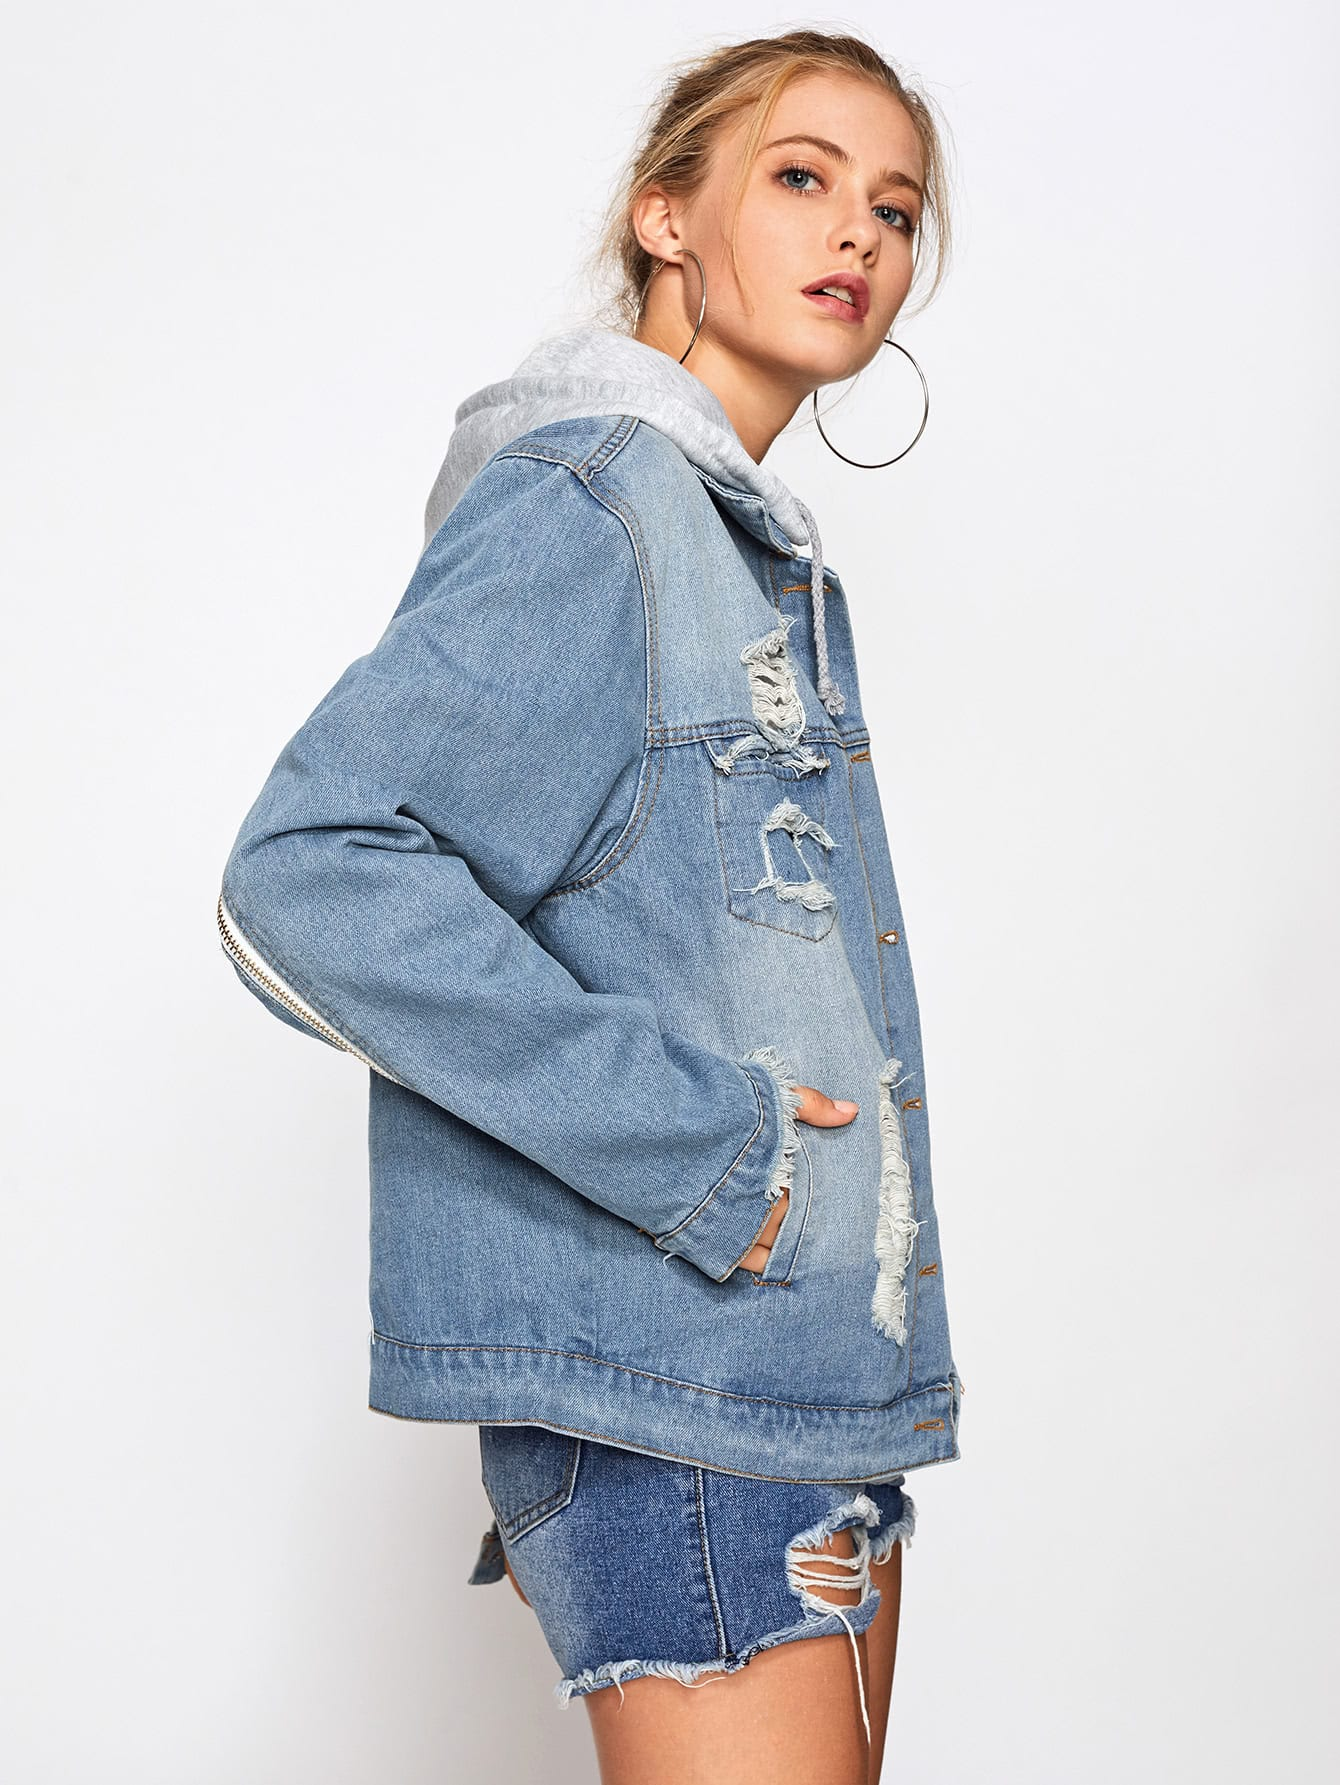 Wings Embroidered Back Hooded Denim Jacket